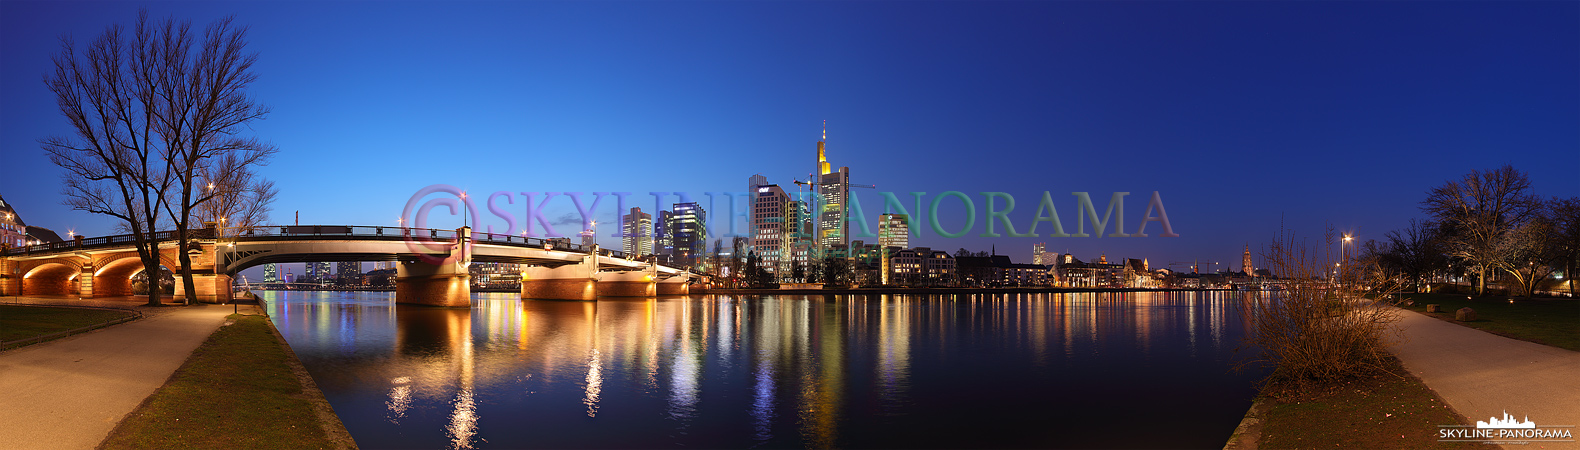 Skyline Germany - Frankfurt am Main